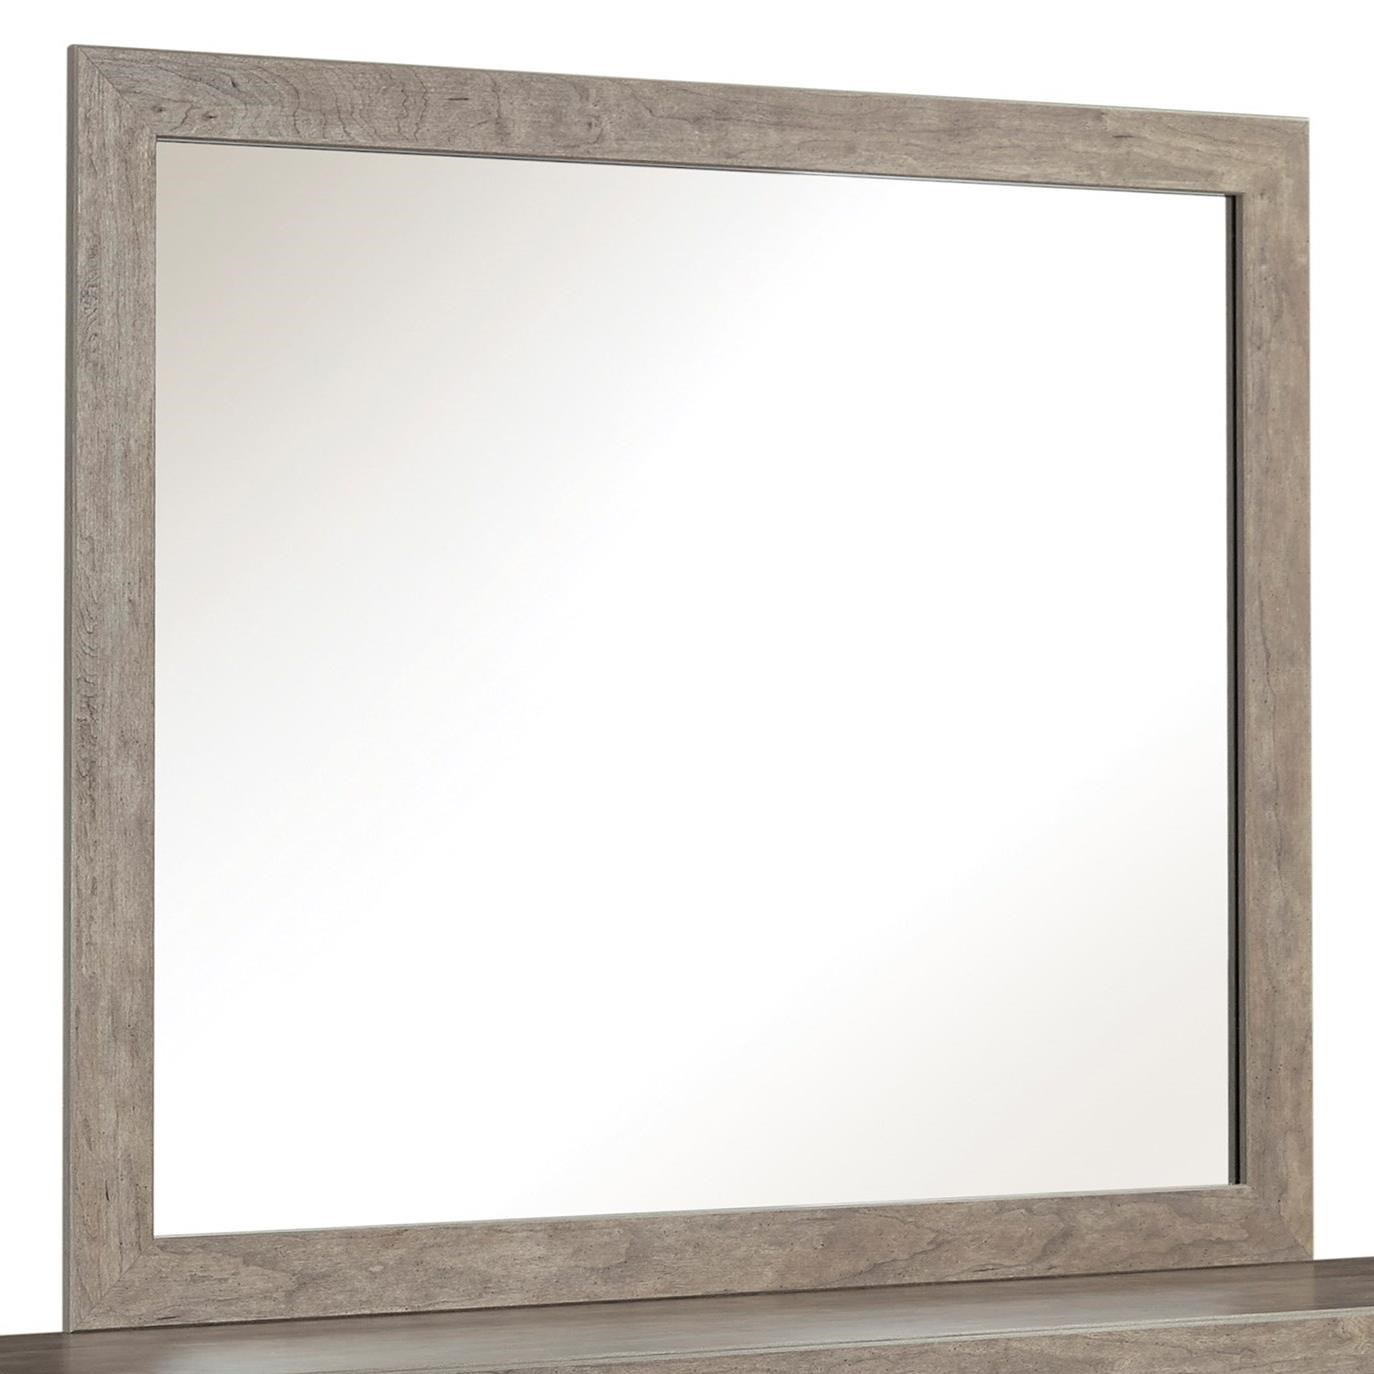 Culverbach Mirror by Signature Design by Ashley at Northeast Factory Direct